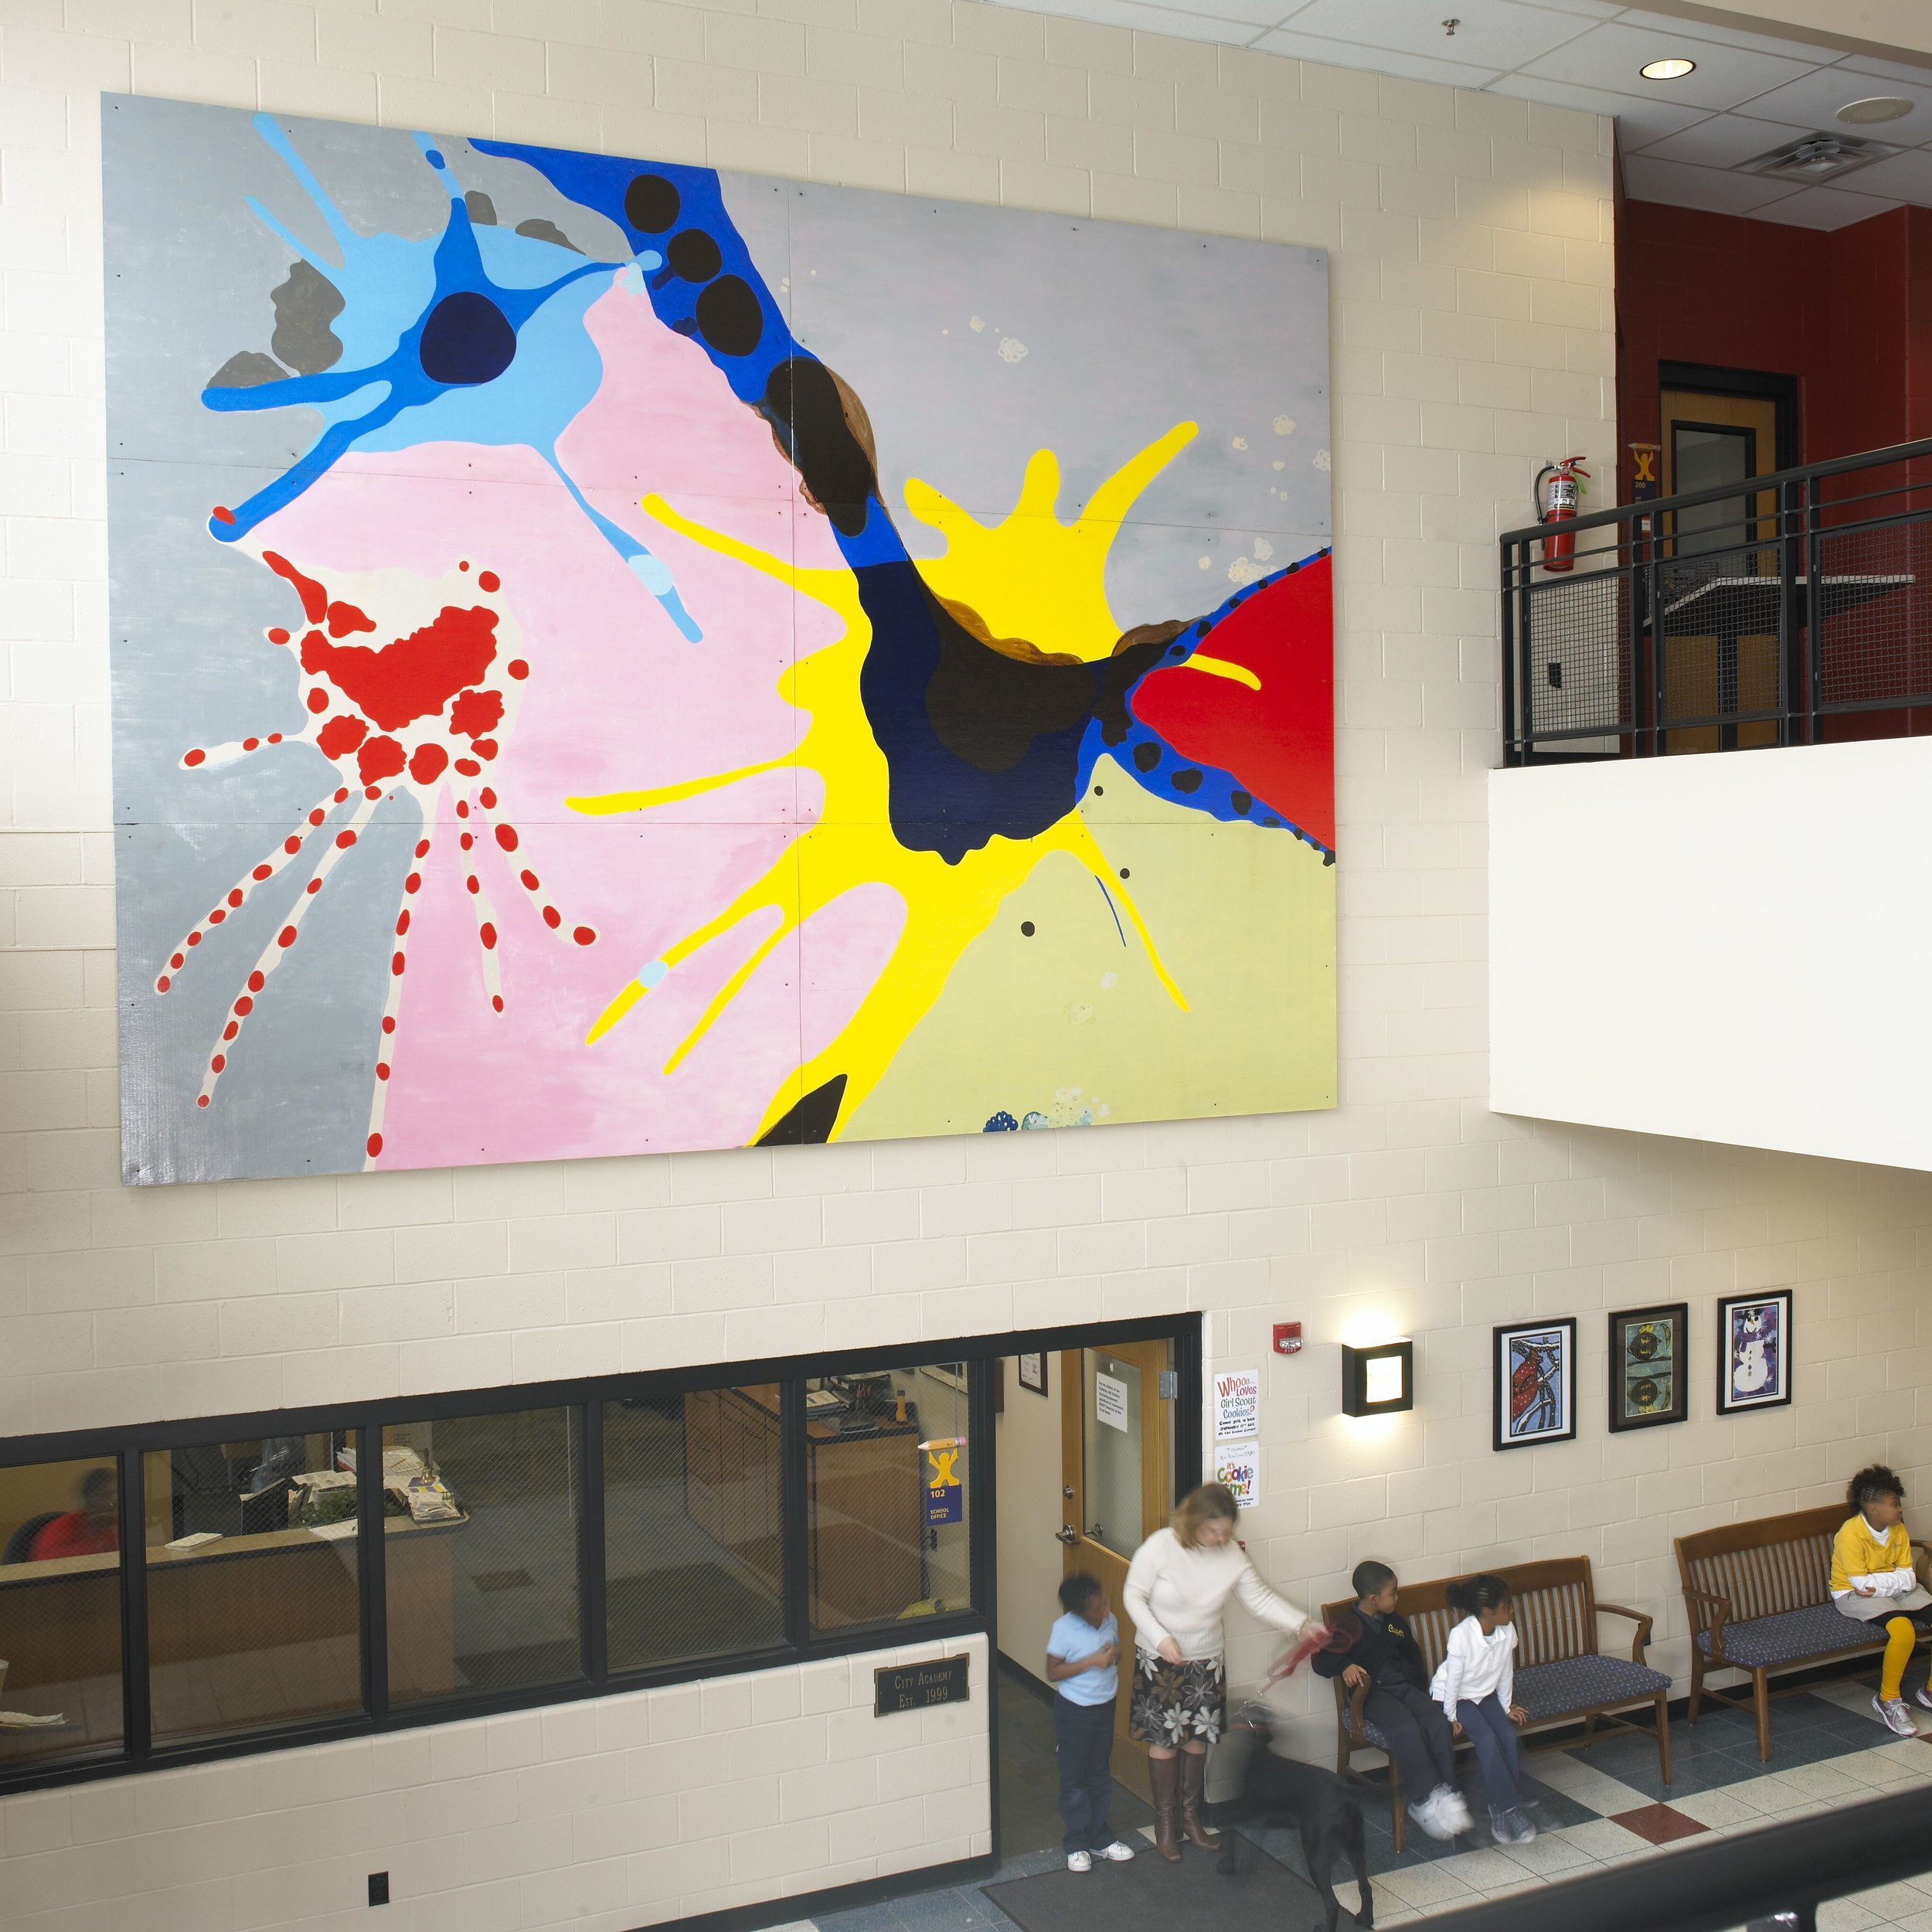 The Dance,  2005  acrylic on wood  12 x 16 feet  City Academy, Saint Louis